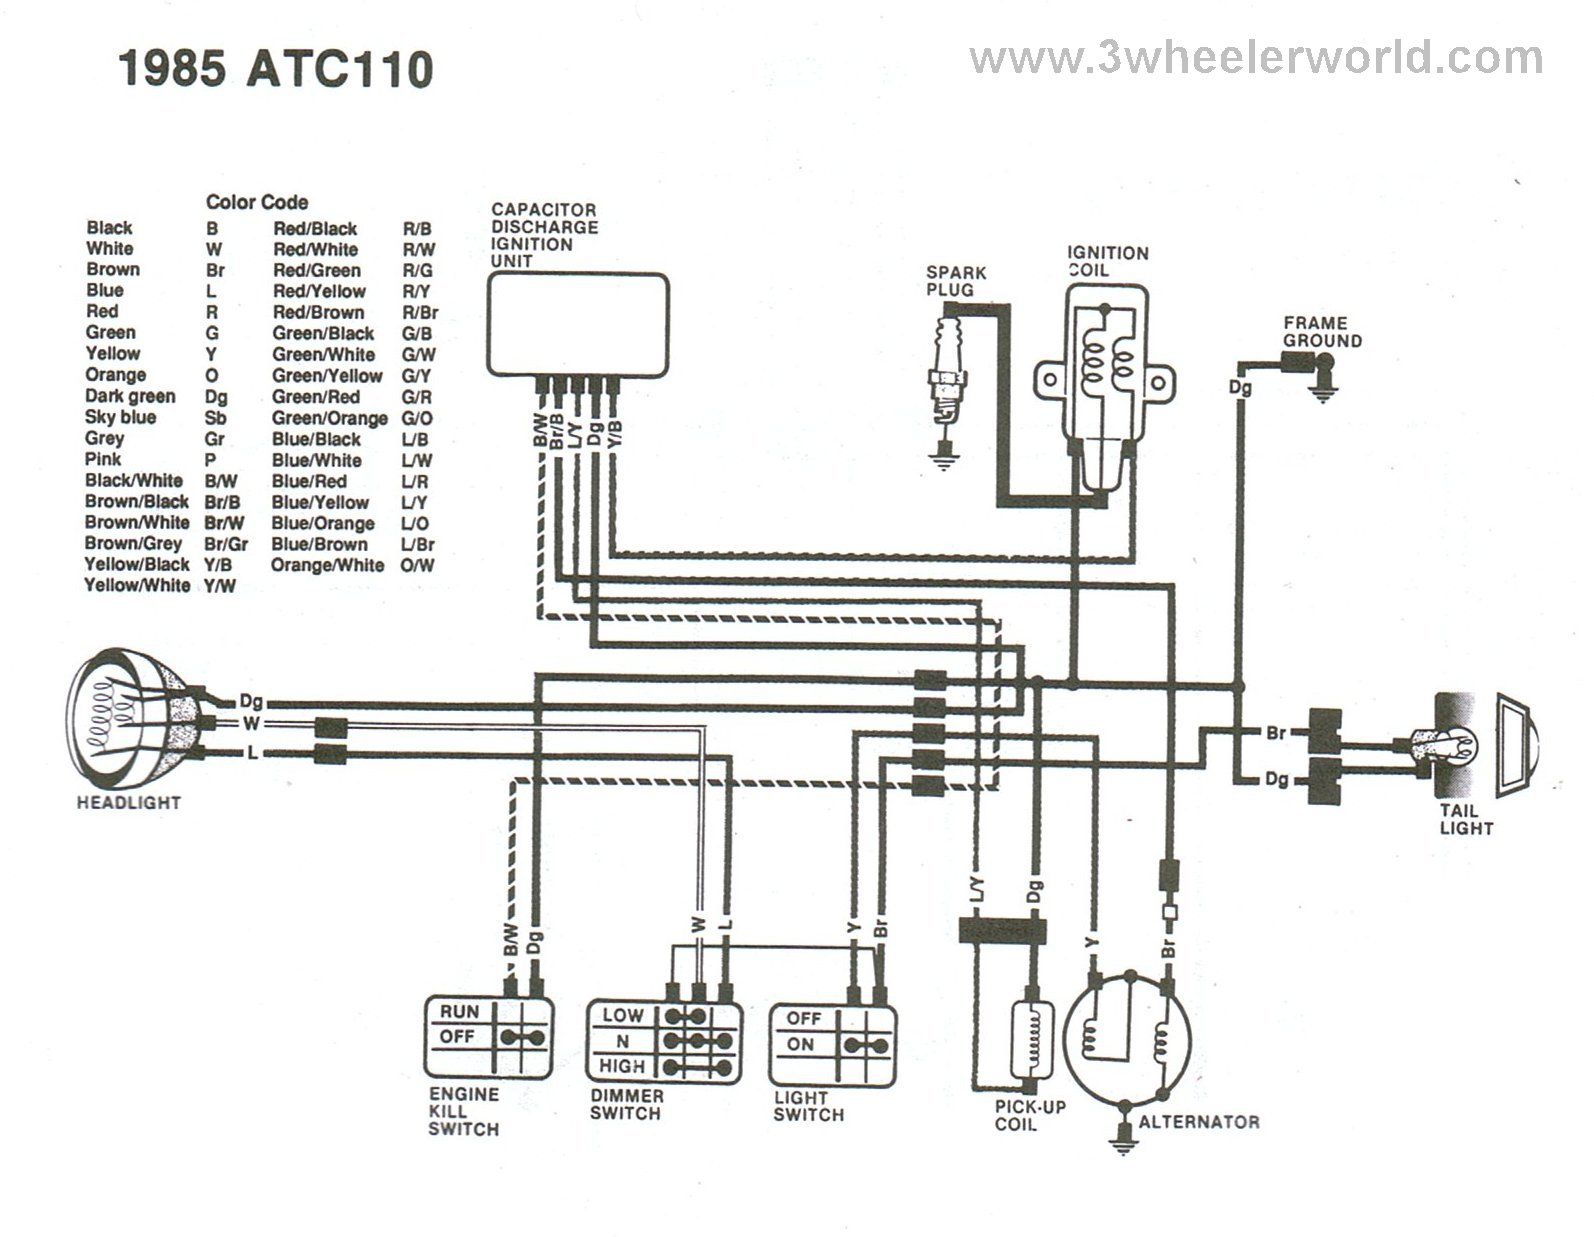 [WRG-3427] Atc 110 Ignition Wiring Diagram